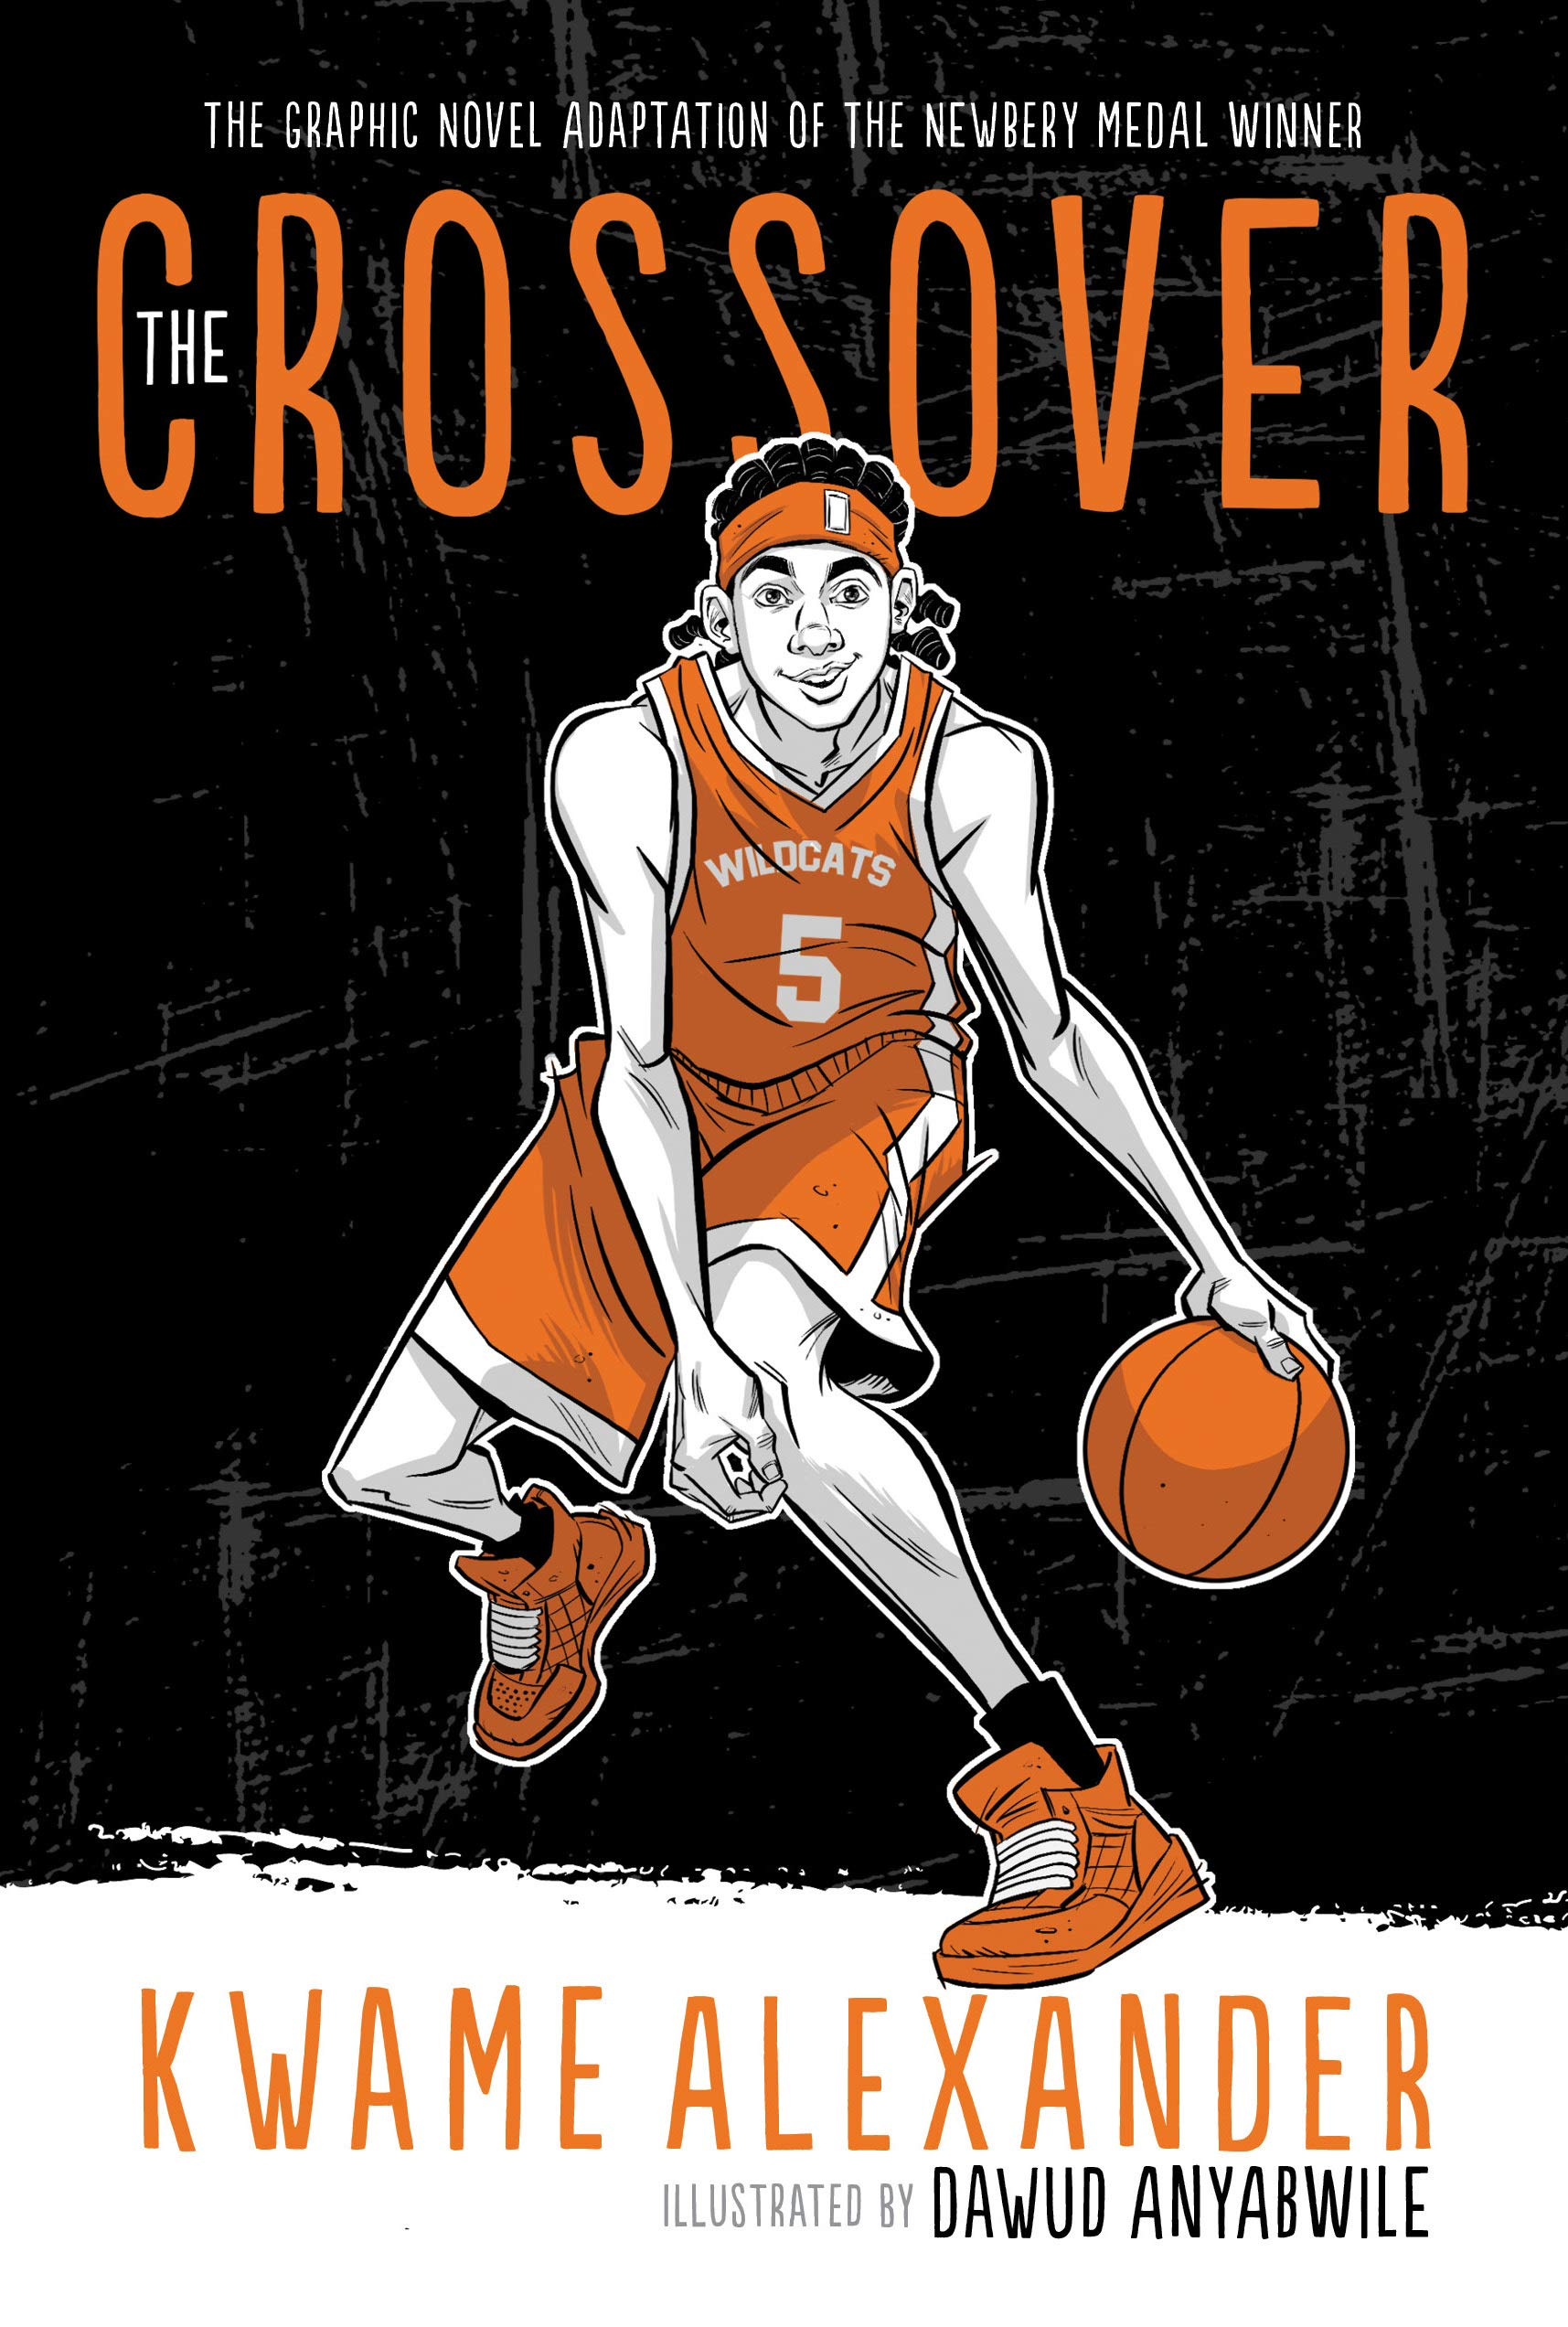 The Crossover (Graphic Novel) (The Crossover Series): Alexander, Kwame,  Anyabwile, Dawud: 9781328960016: Amazon.com: Books